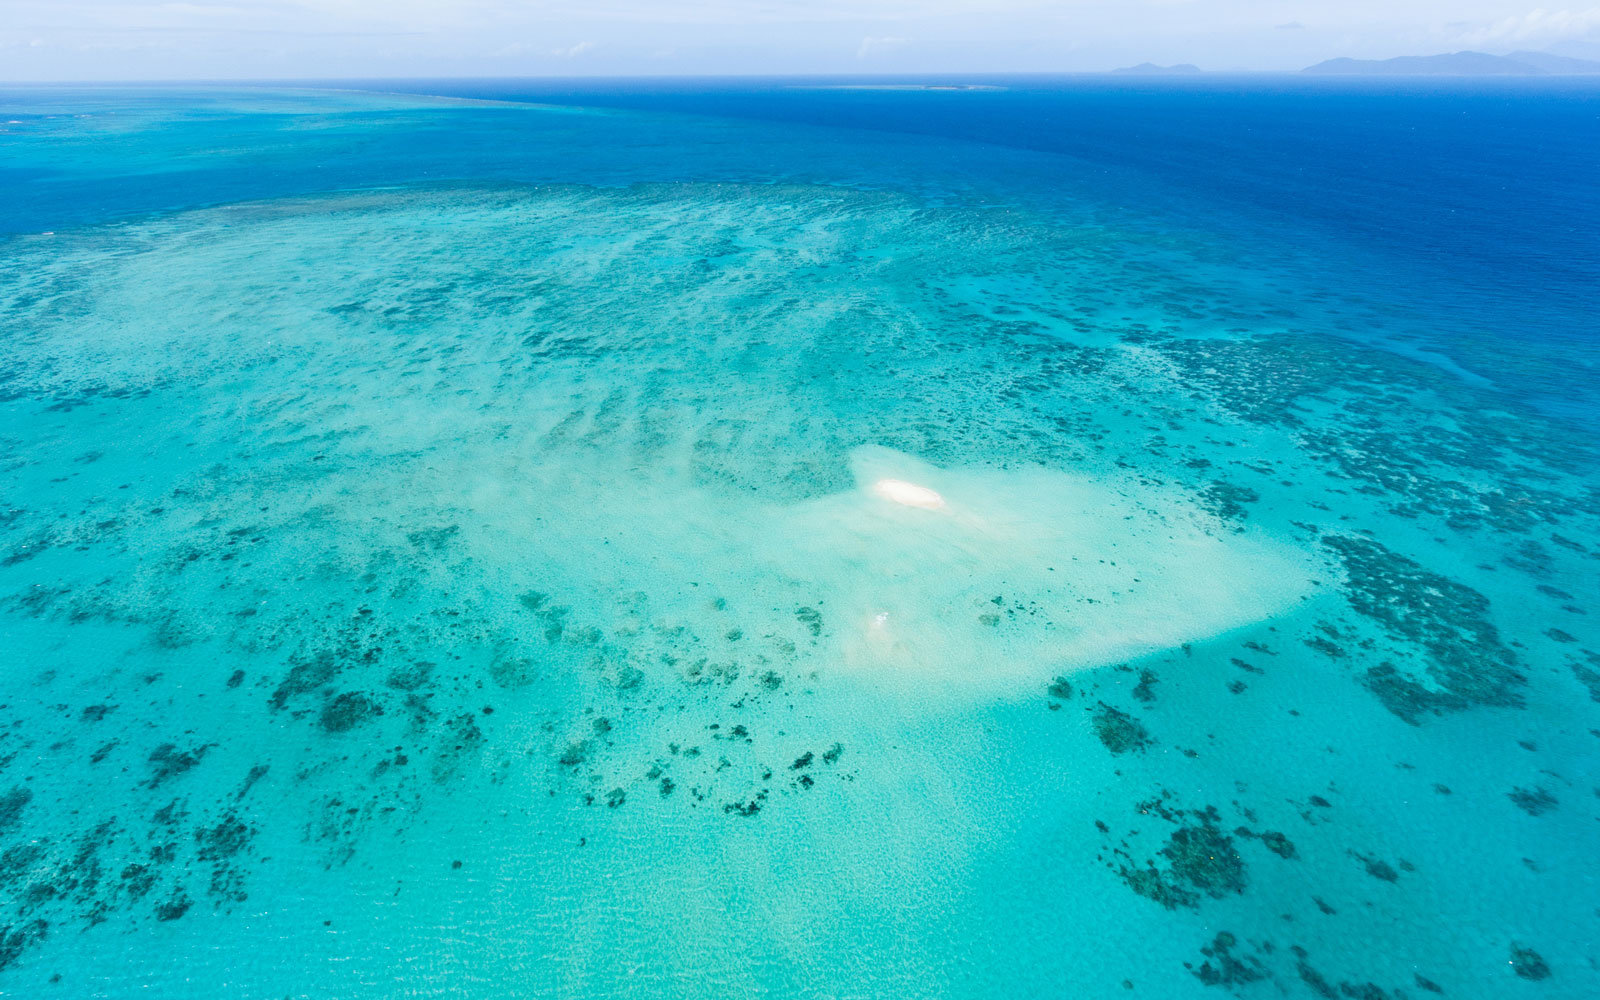 Guide to the Great Barrier Reef